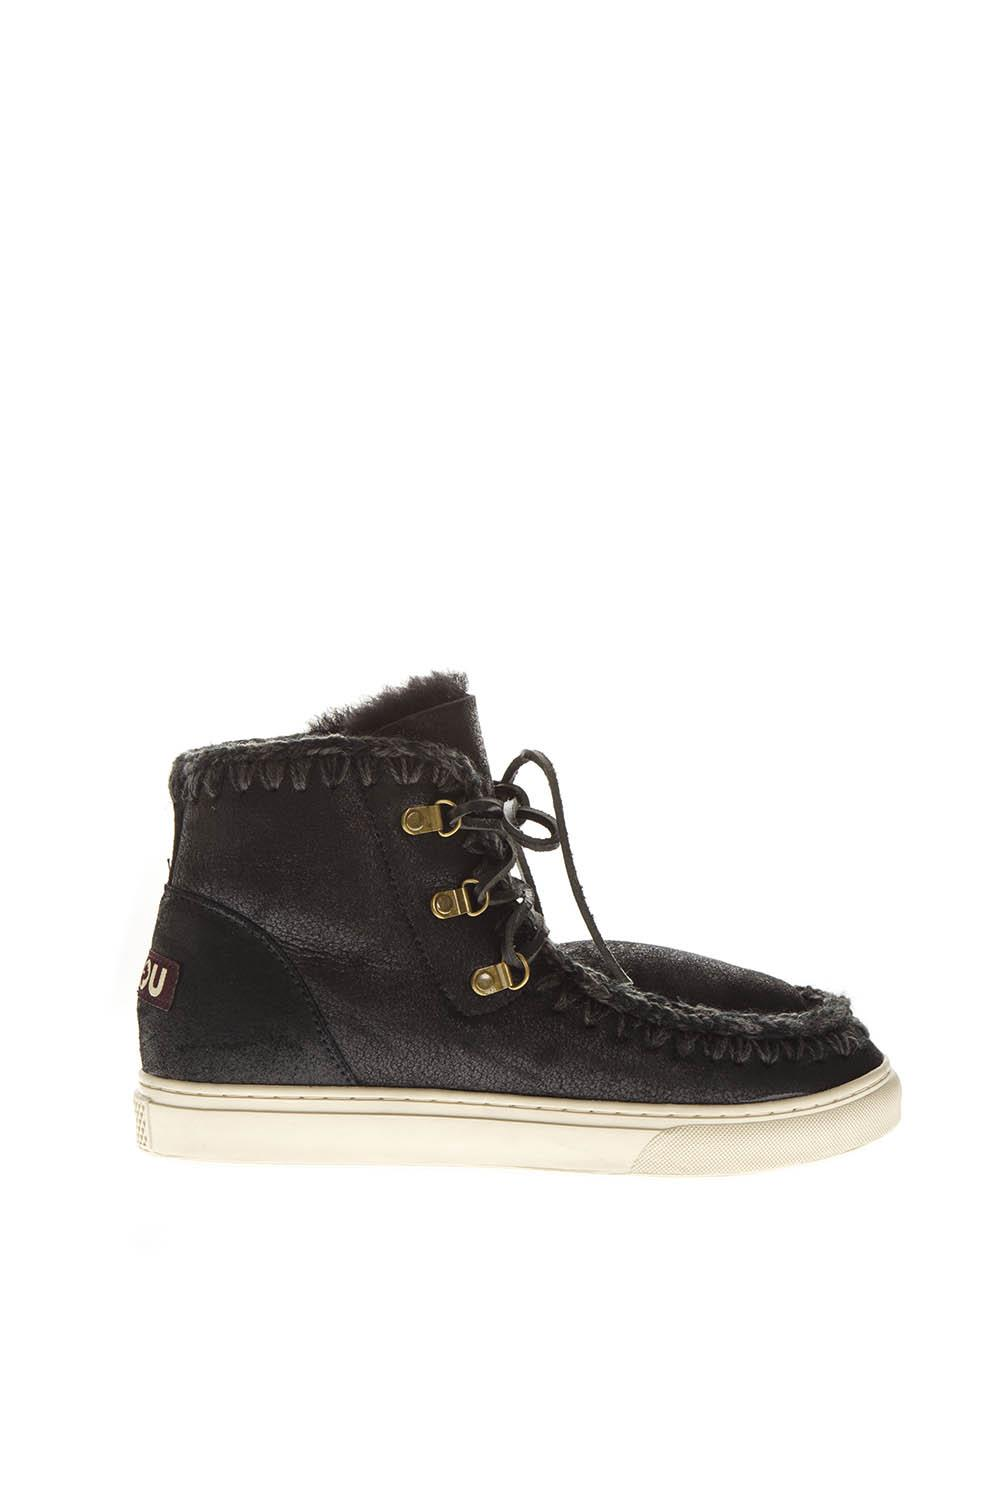 Mou Black Leather Laced Up Boots